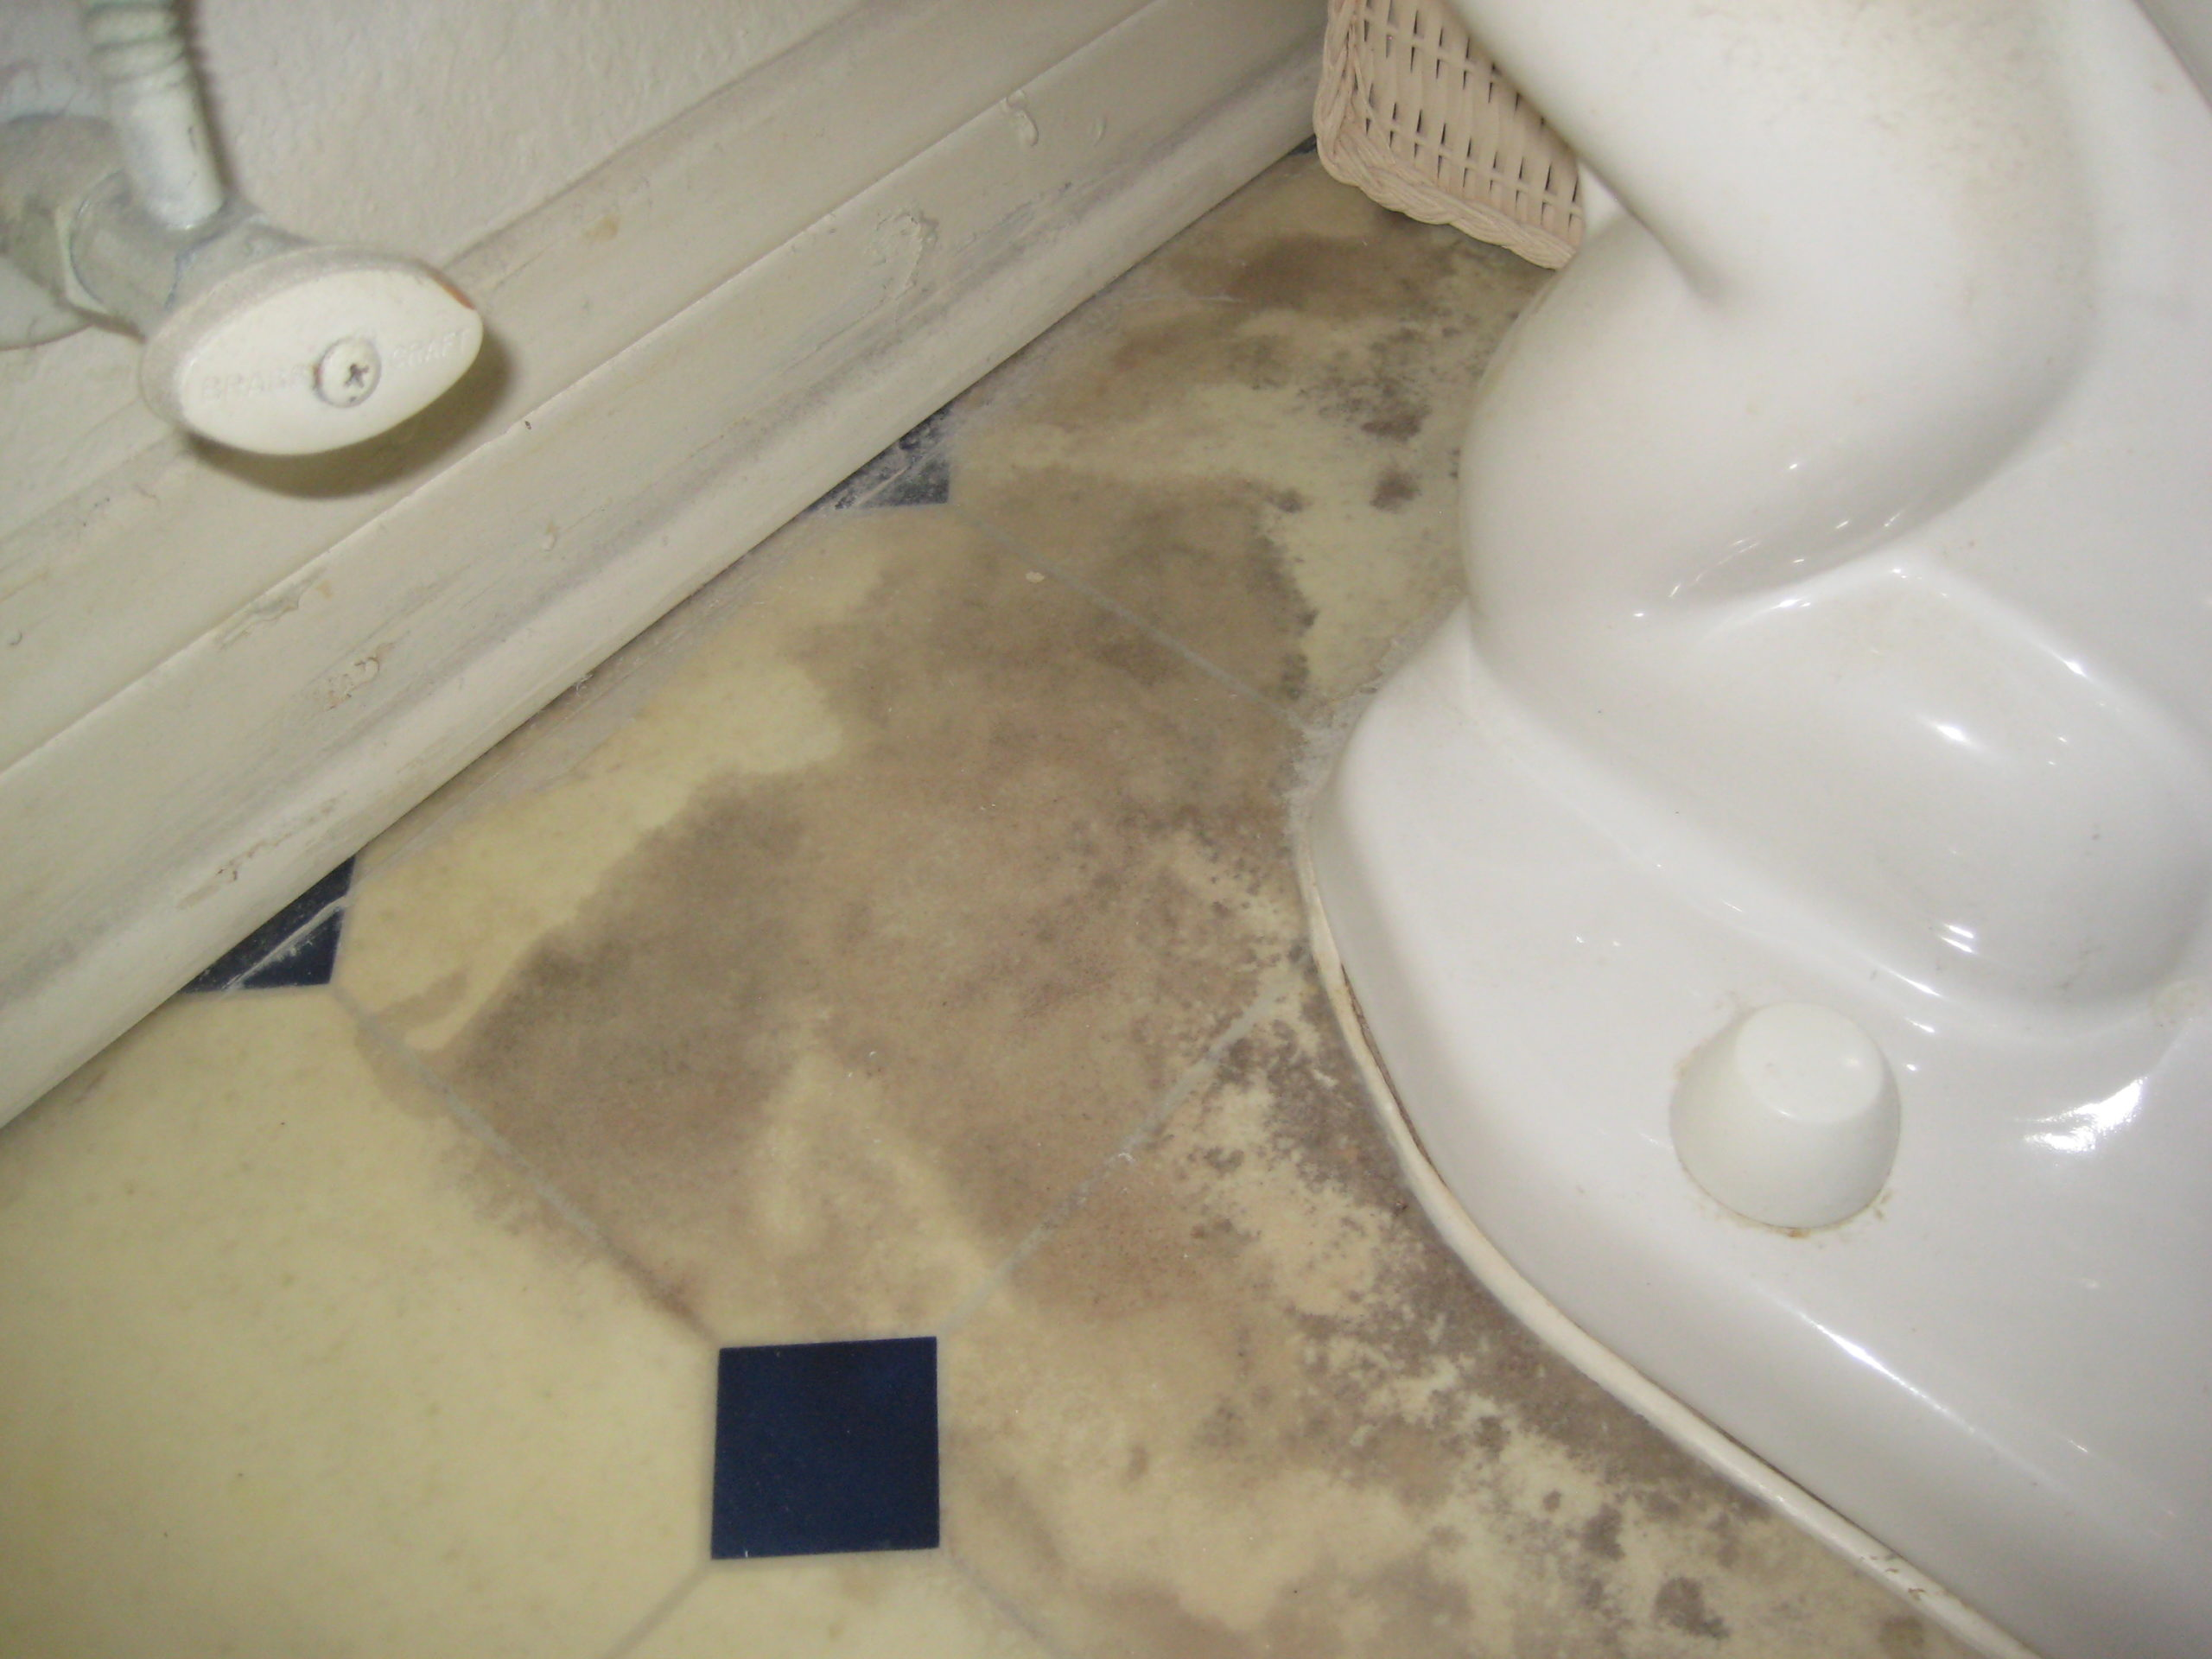 Water Damage and Mold Growth in Moorpark, CA